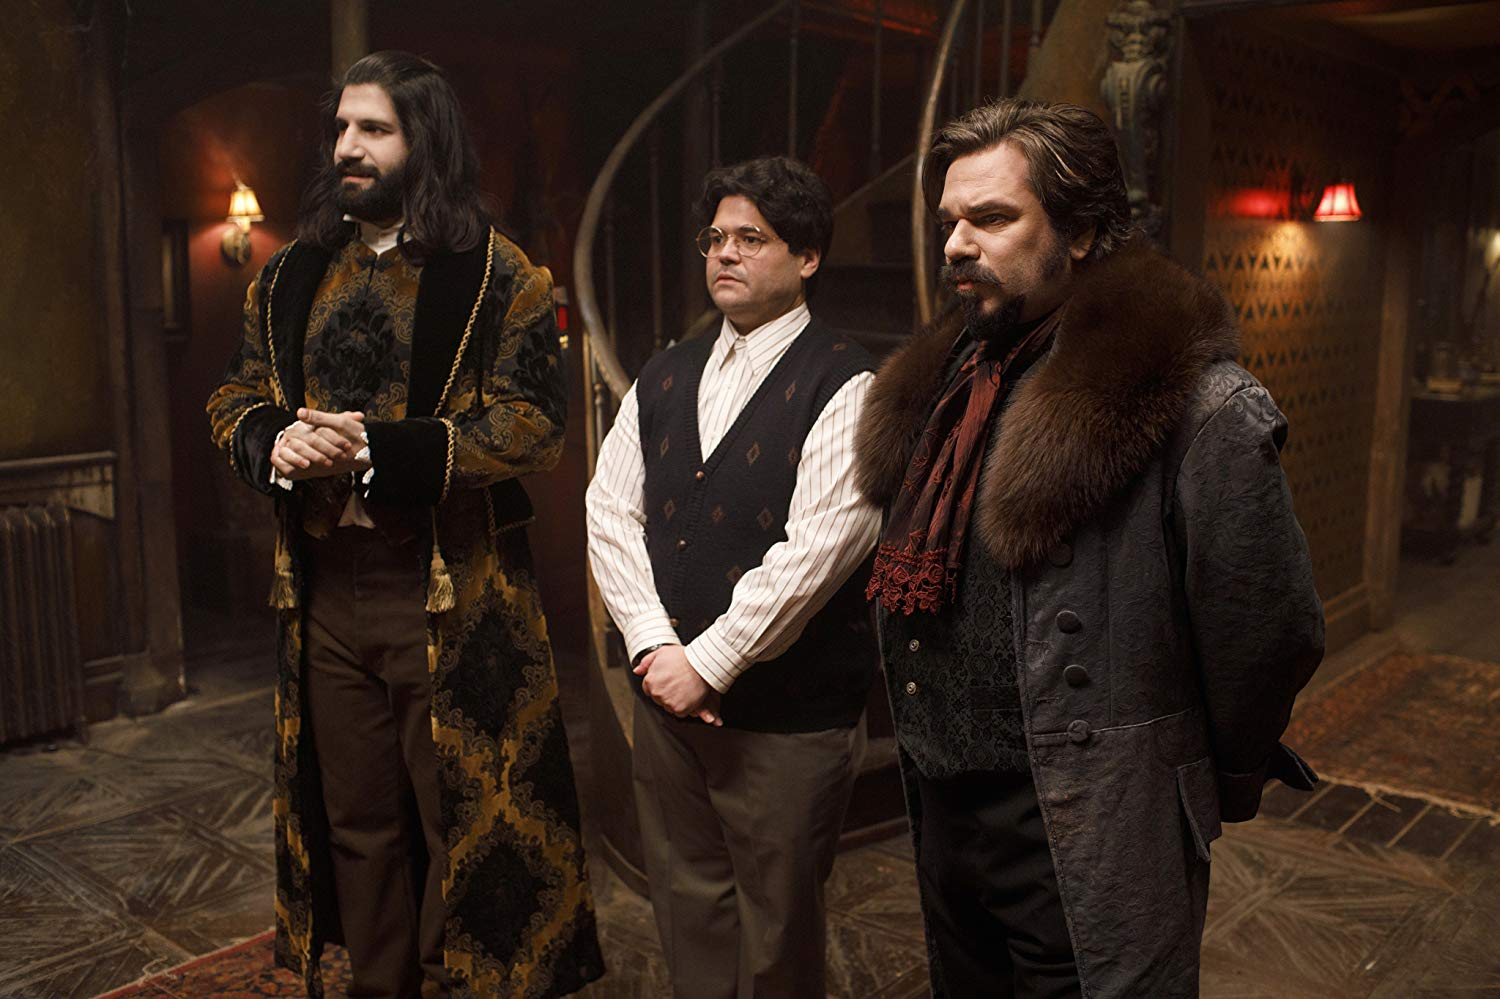 What We Do in the Shadows: Pilot